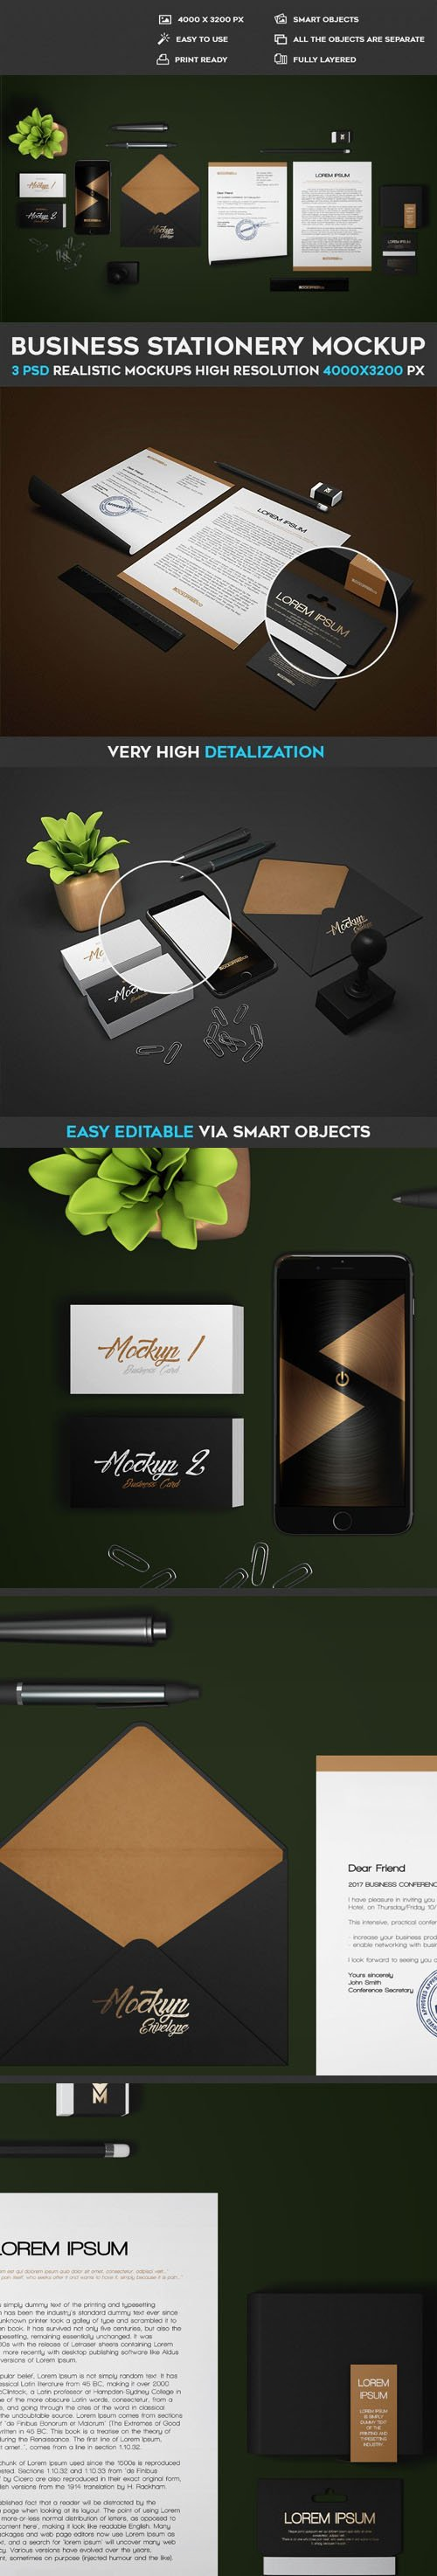 Realistic Business Stationery PSD Mockups Templates